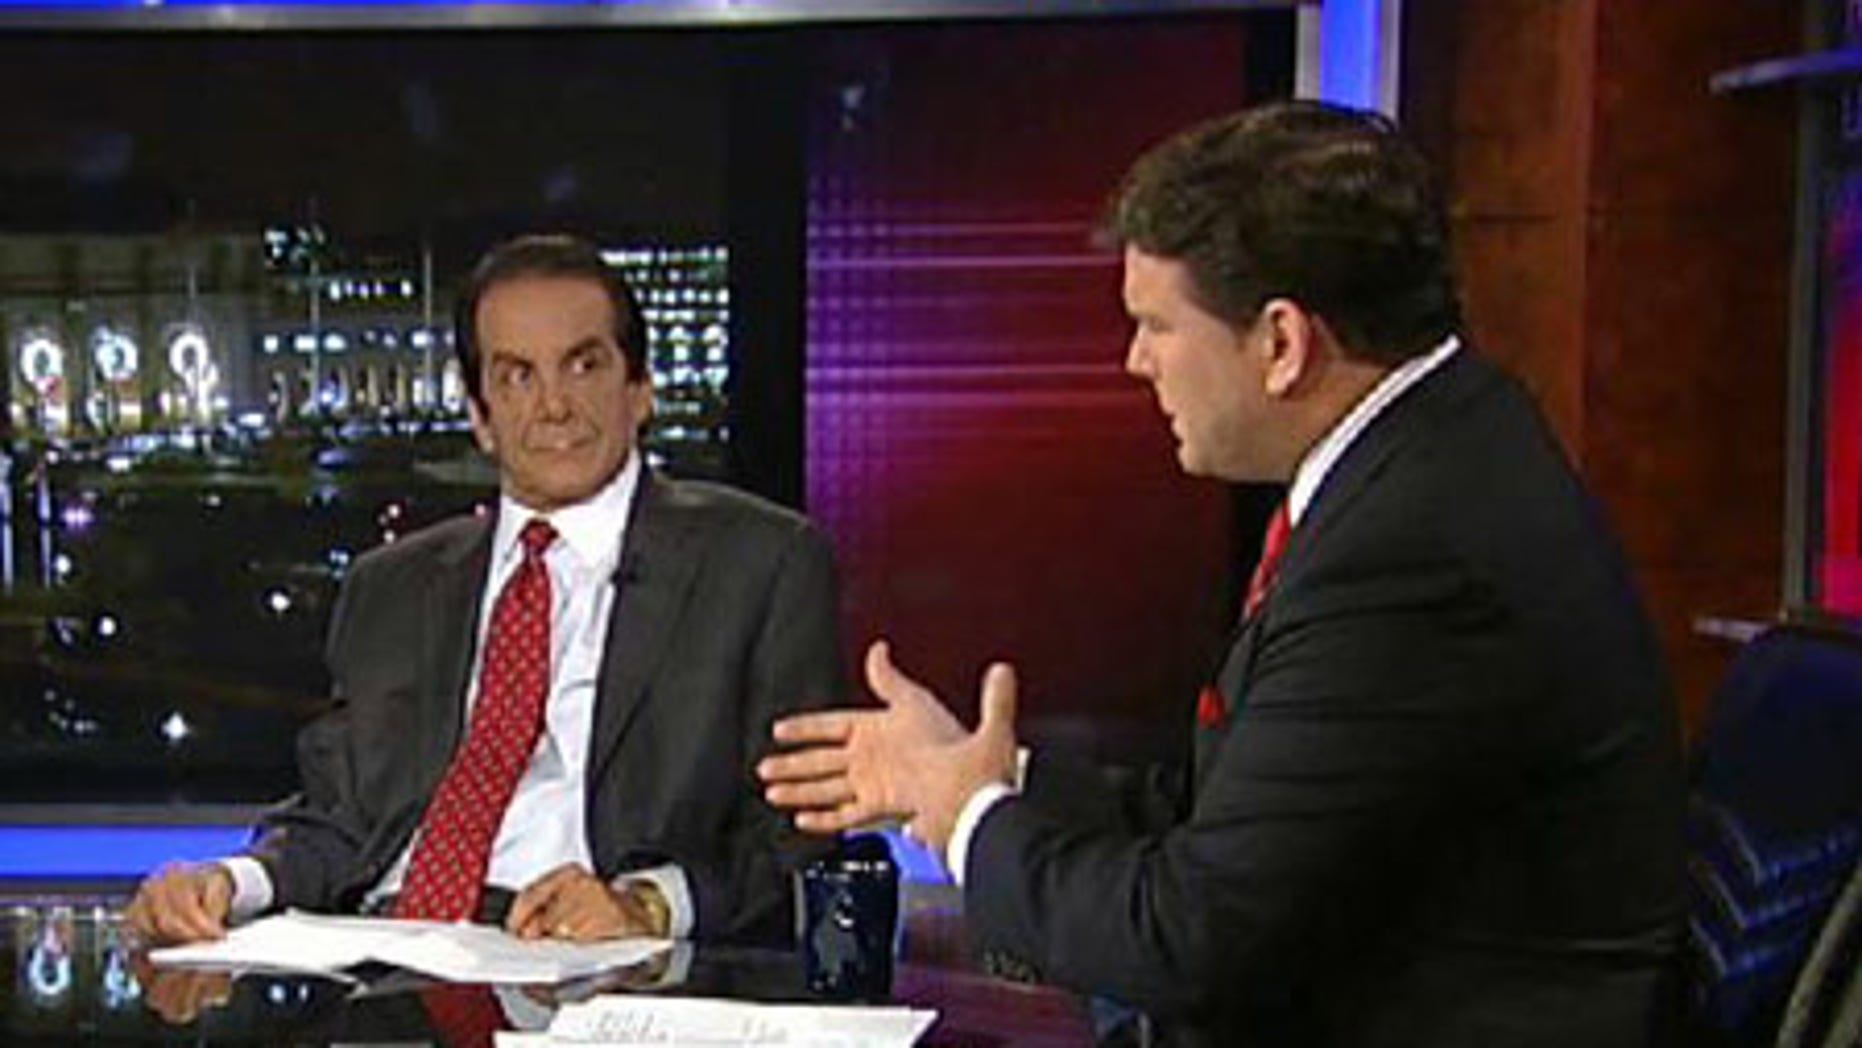 Charles Krauthammer with host Bret Baier